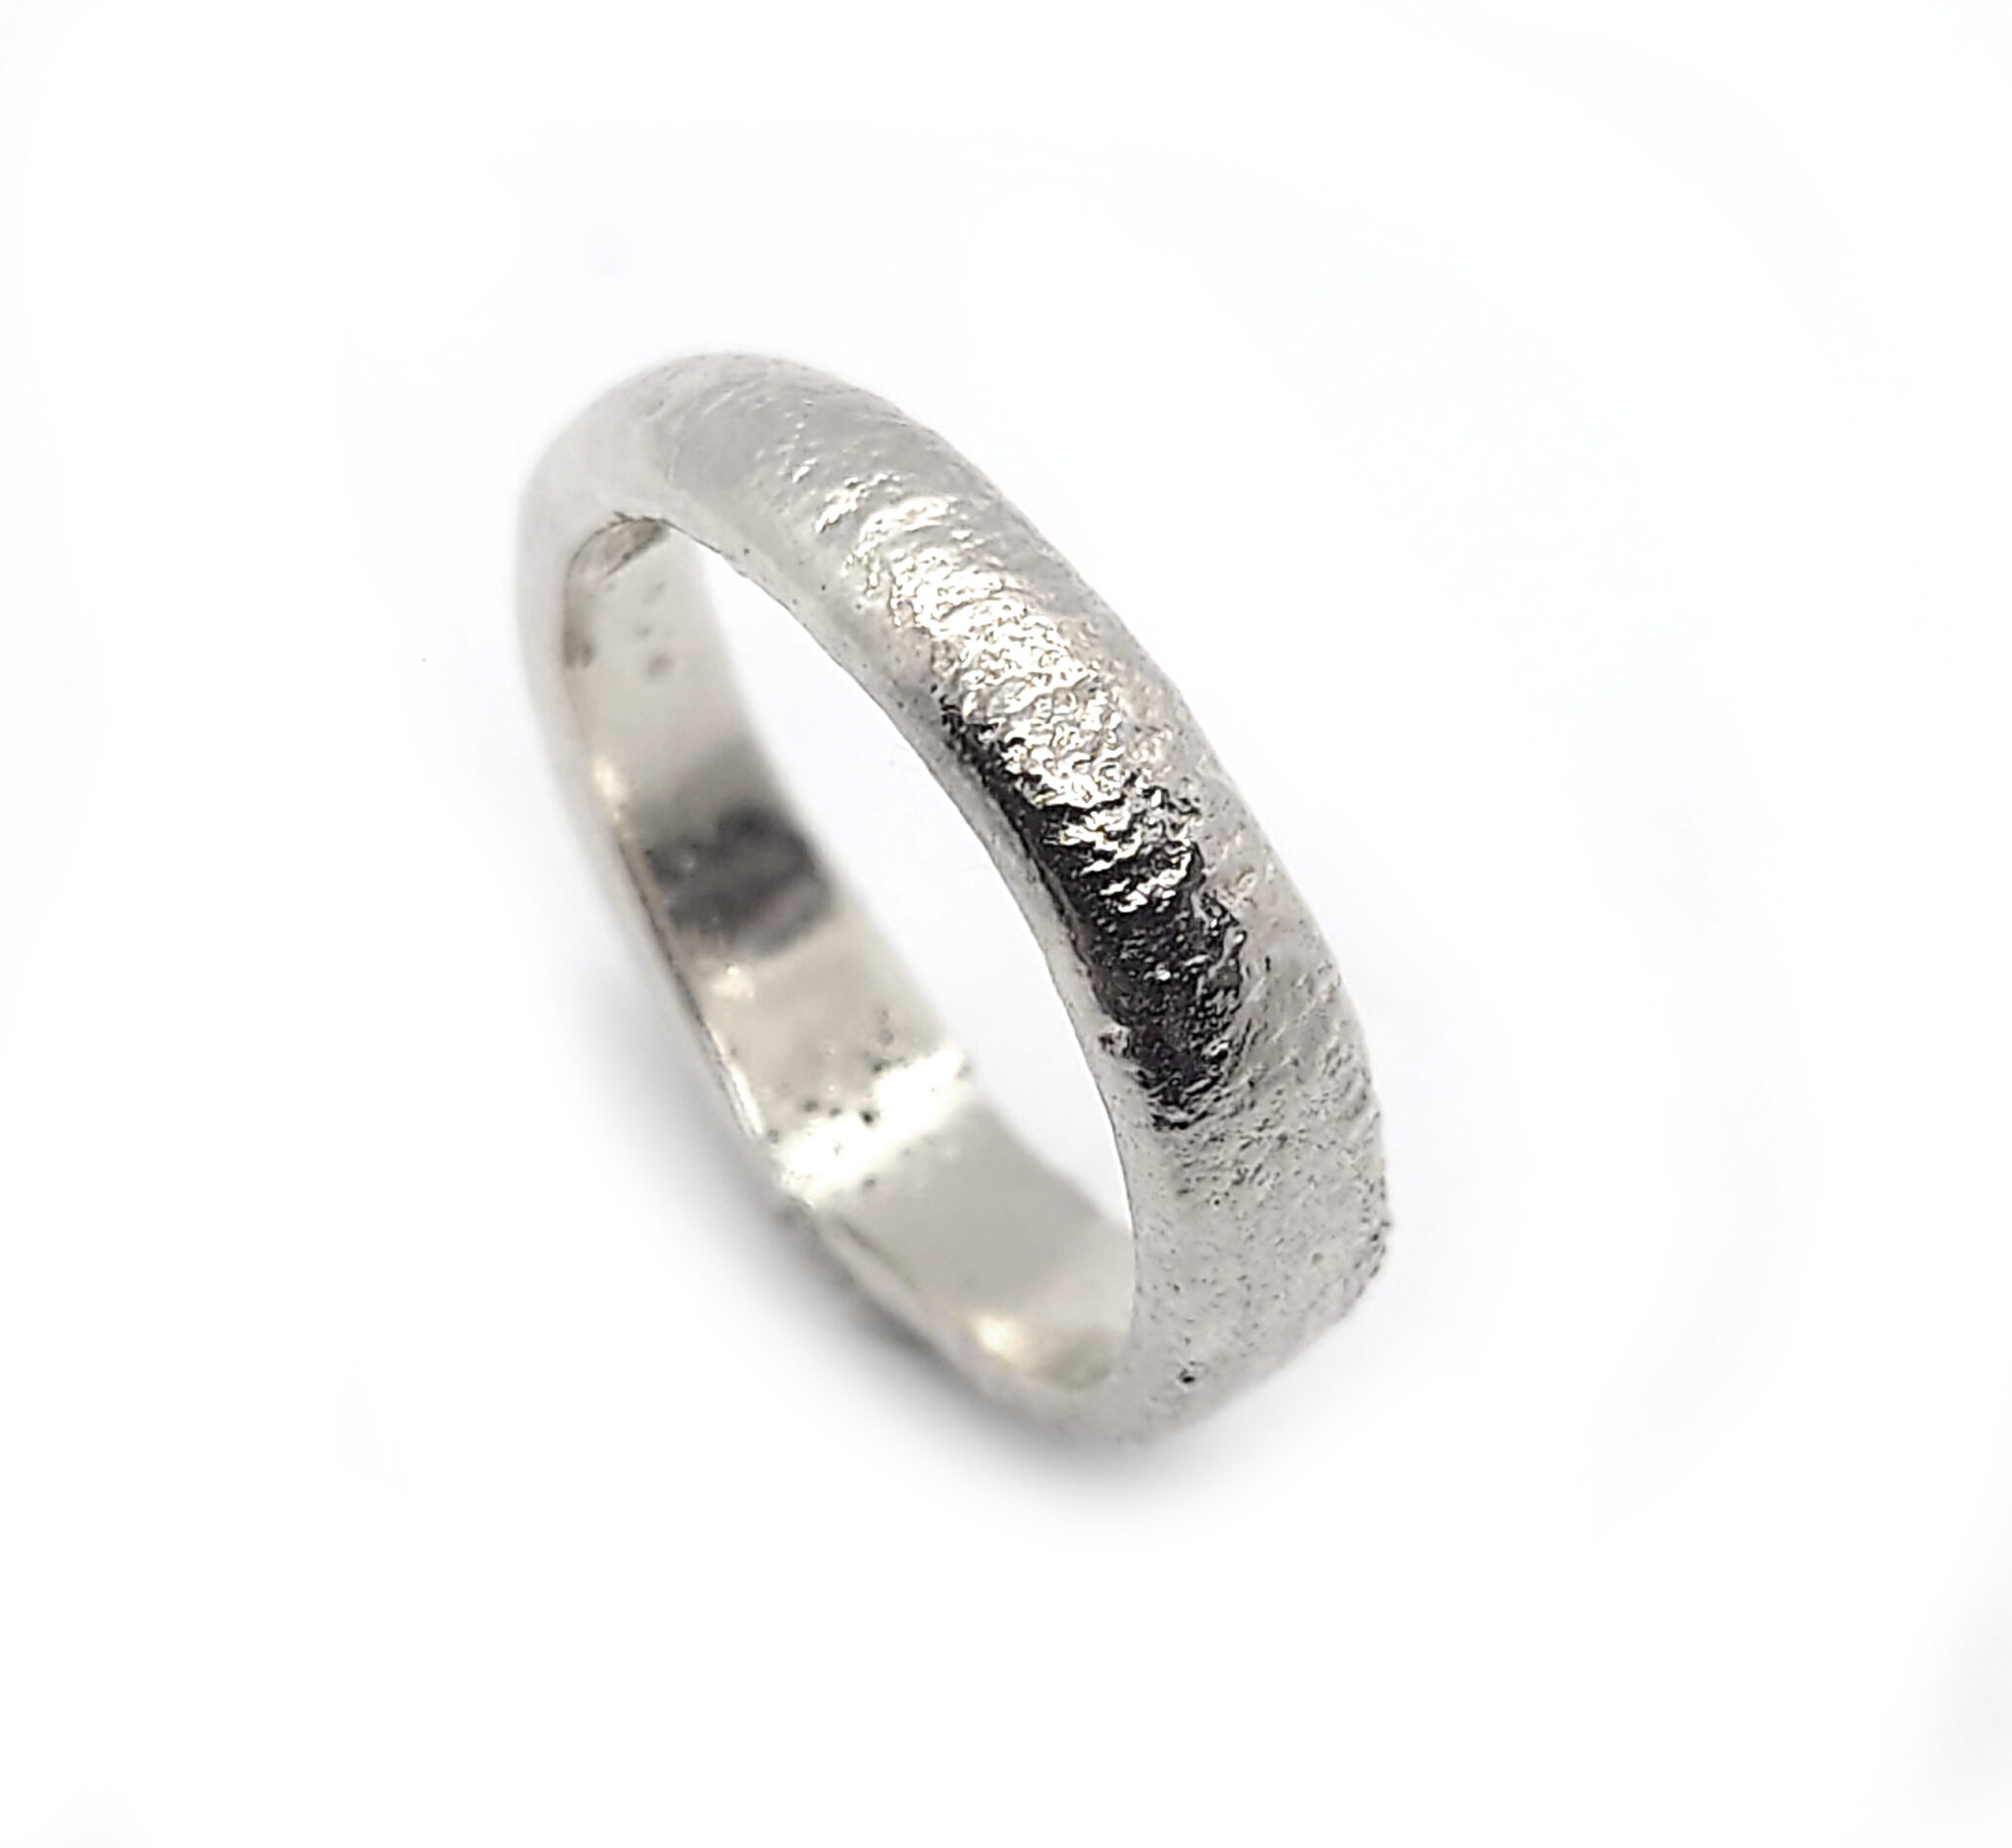 Melt Wider Sterling Silver Ring Size N By R-Process